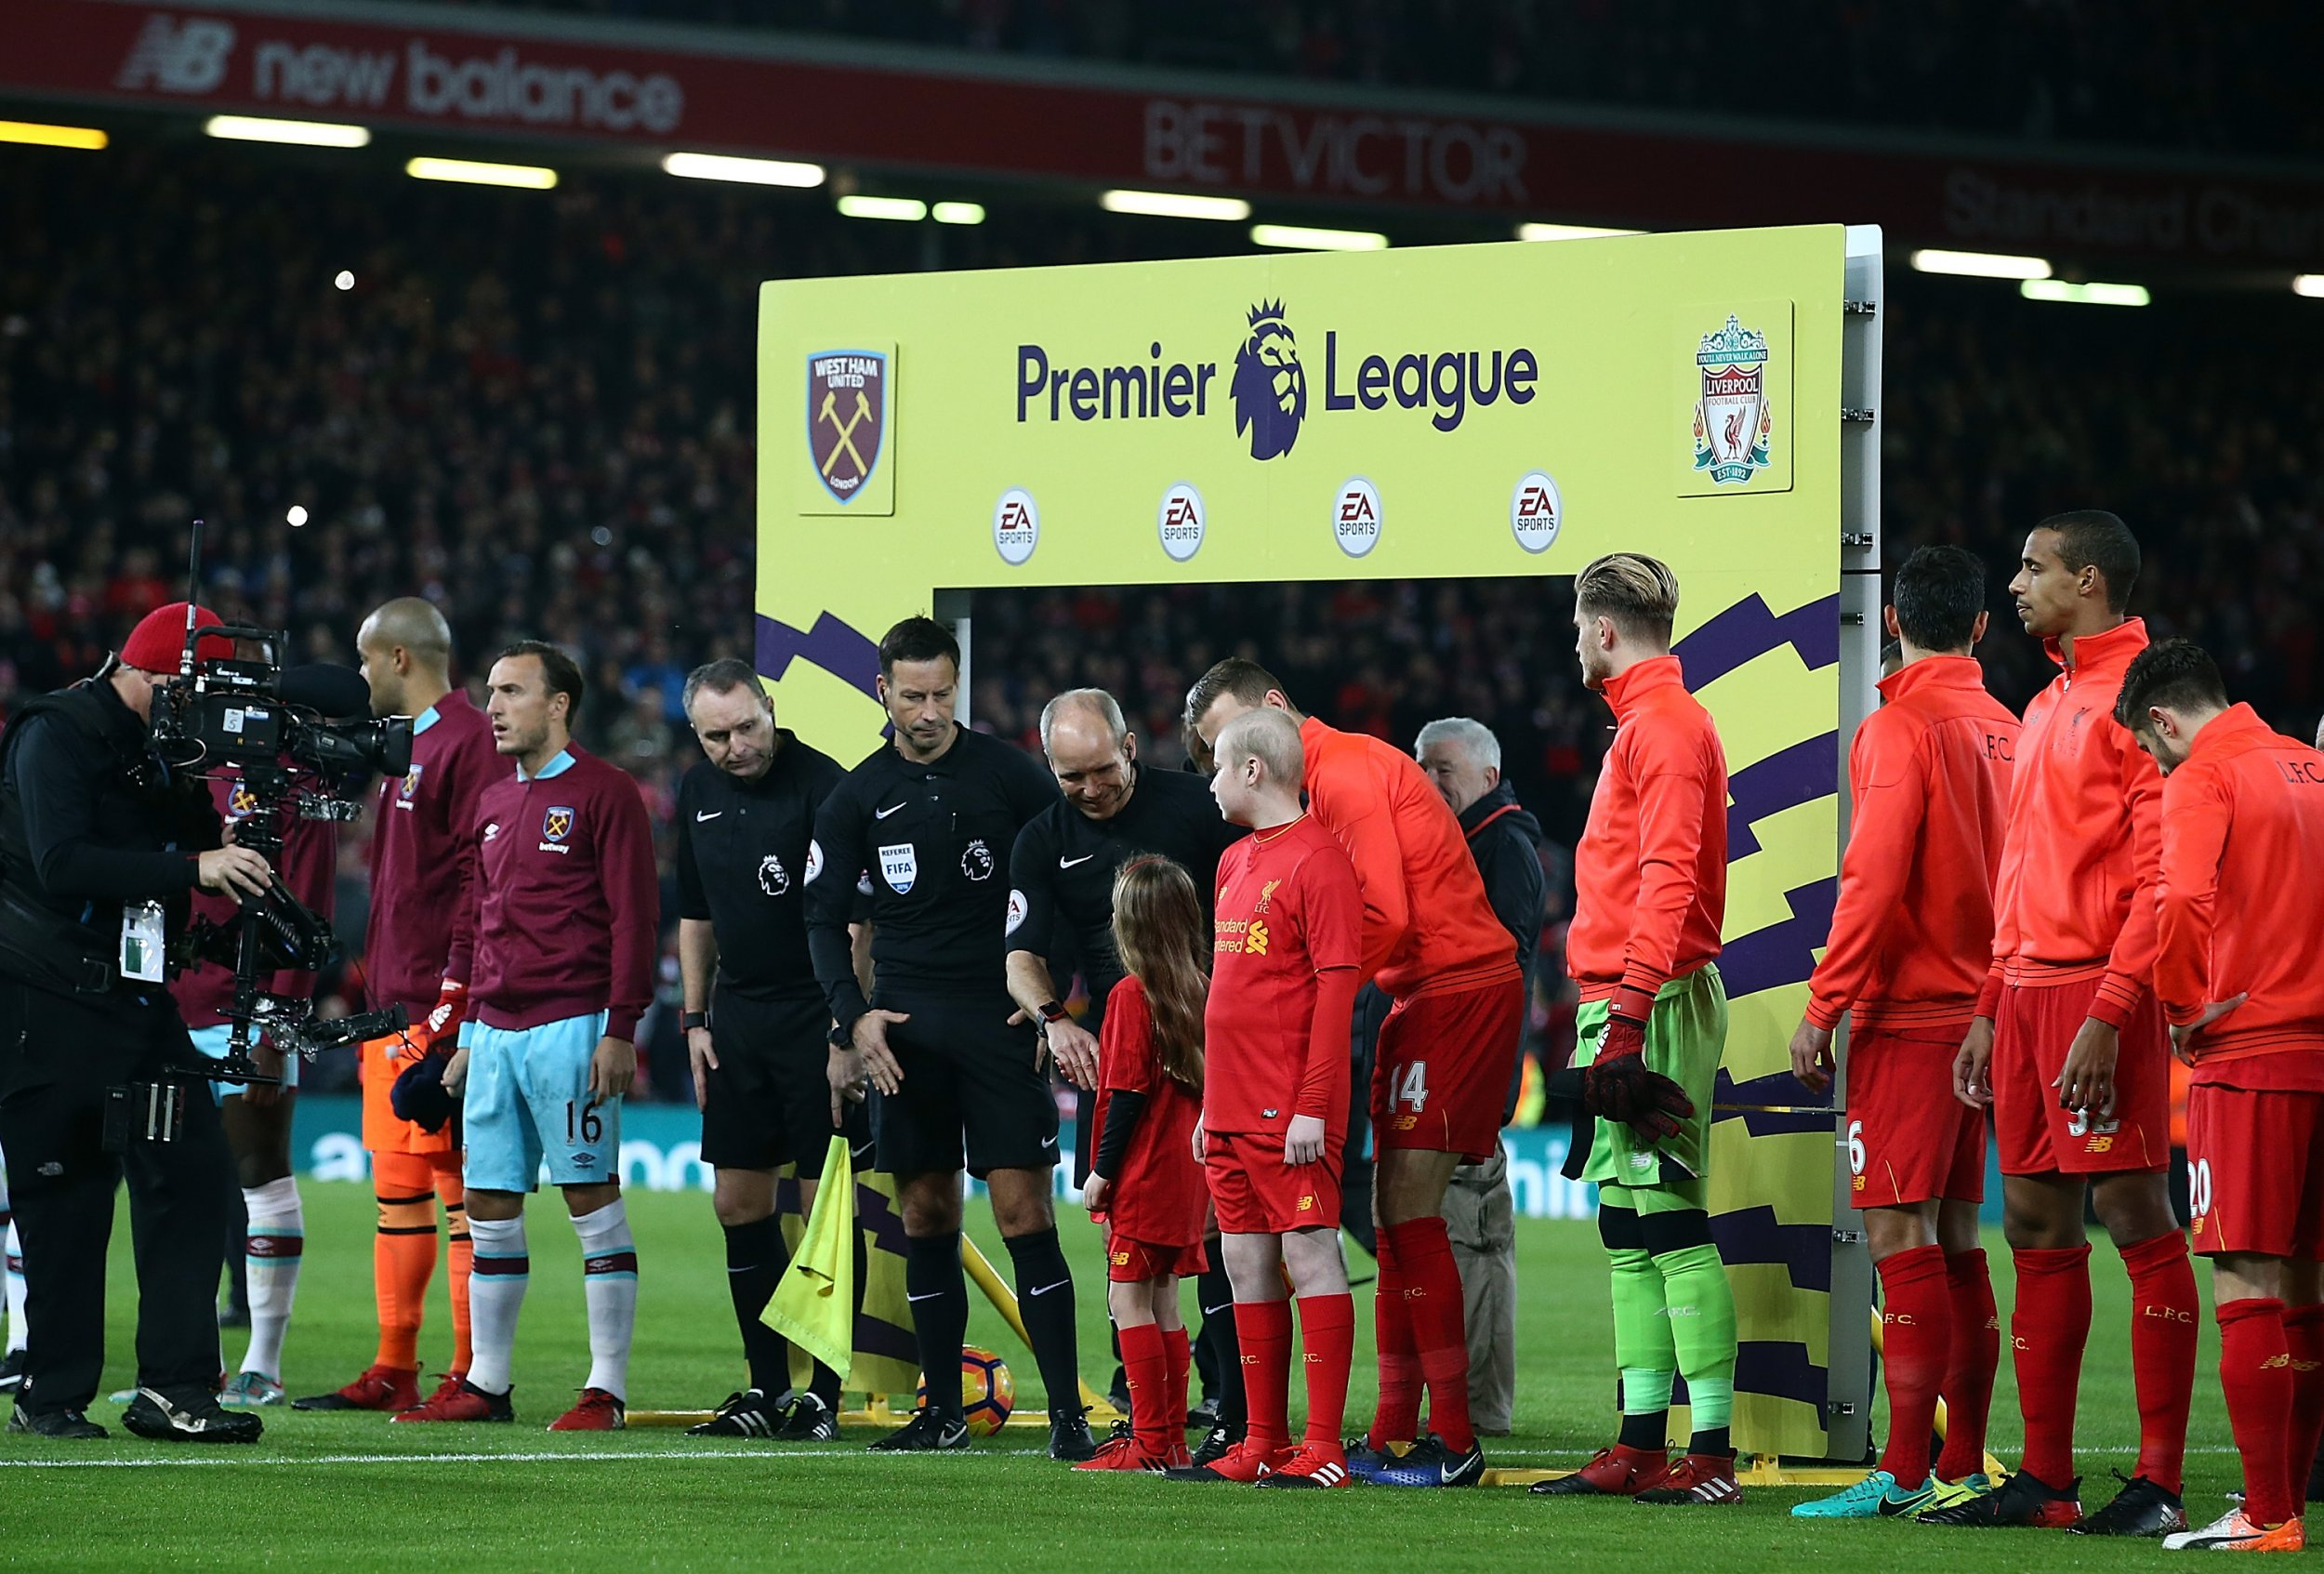 The Premier League game at Anfield between Liverpool and West Ham United.